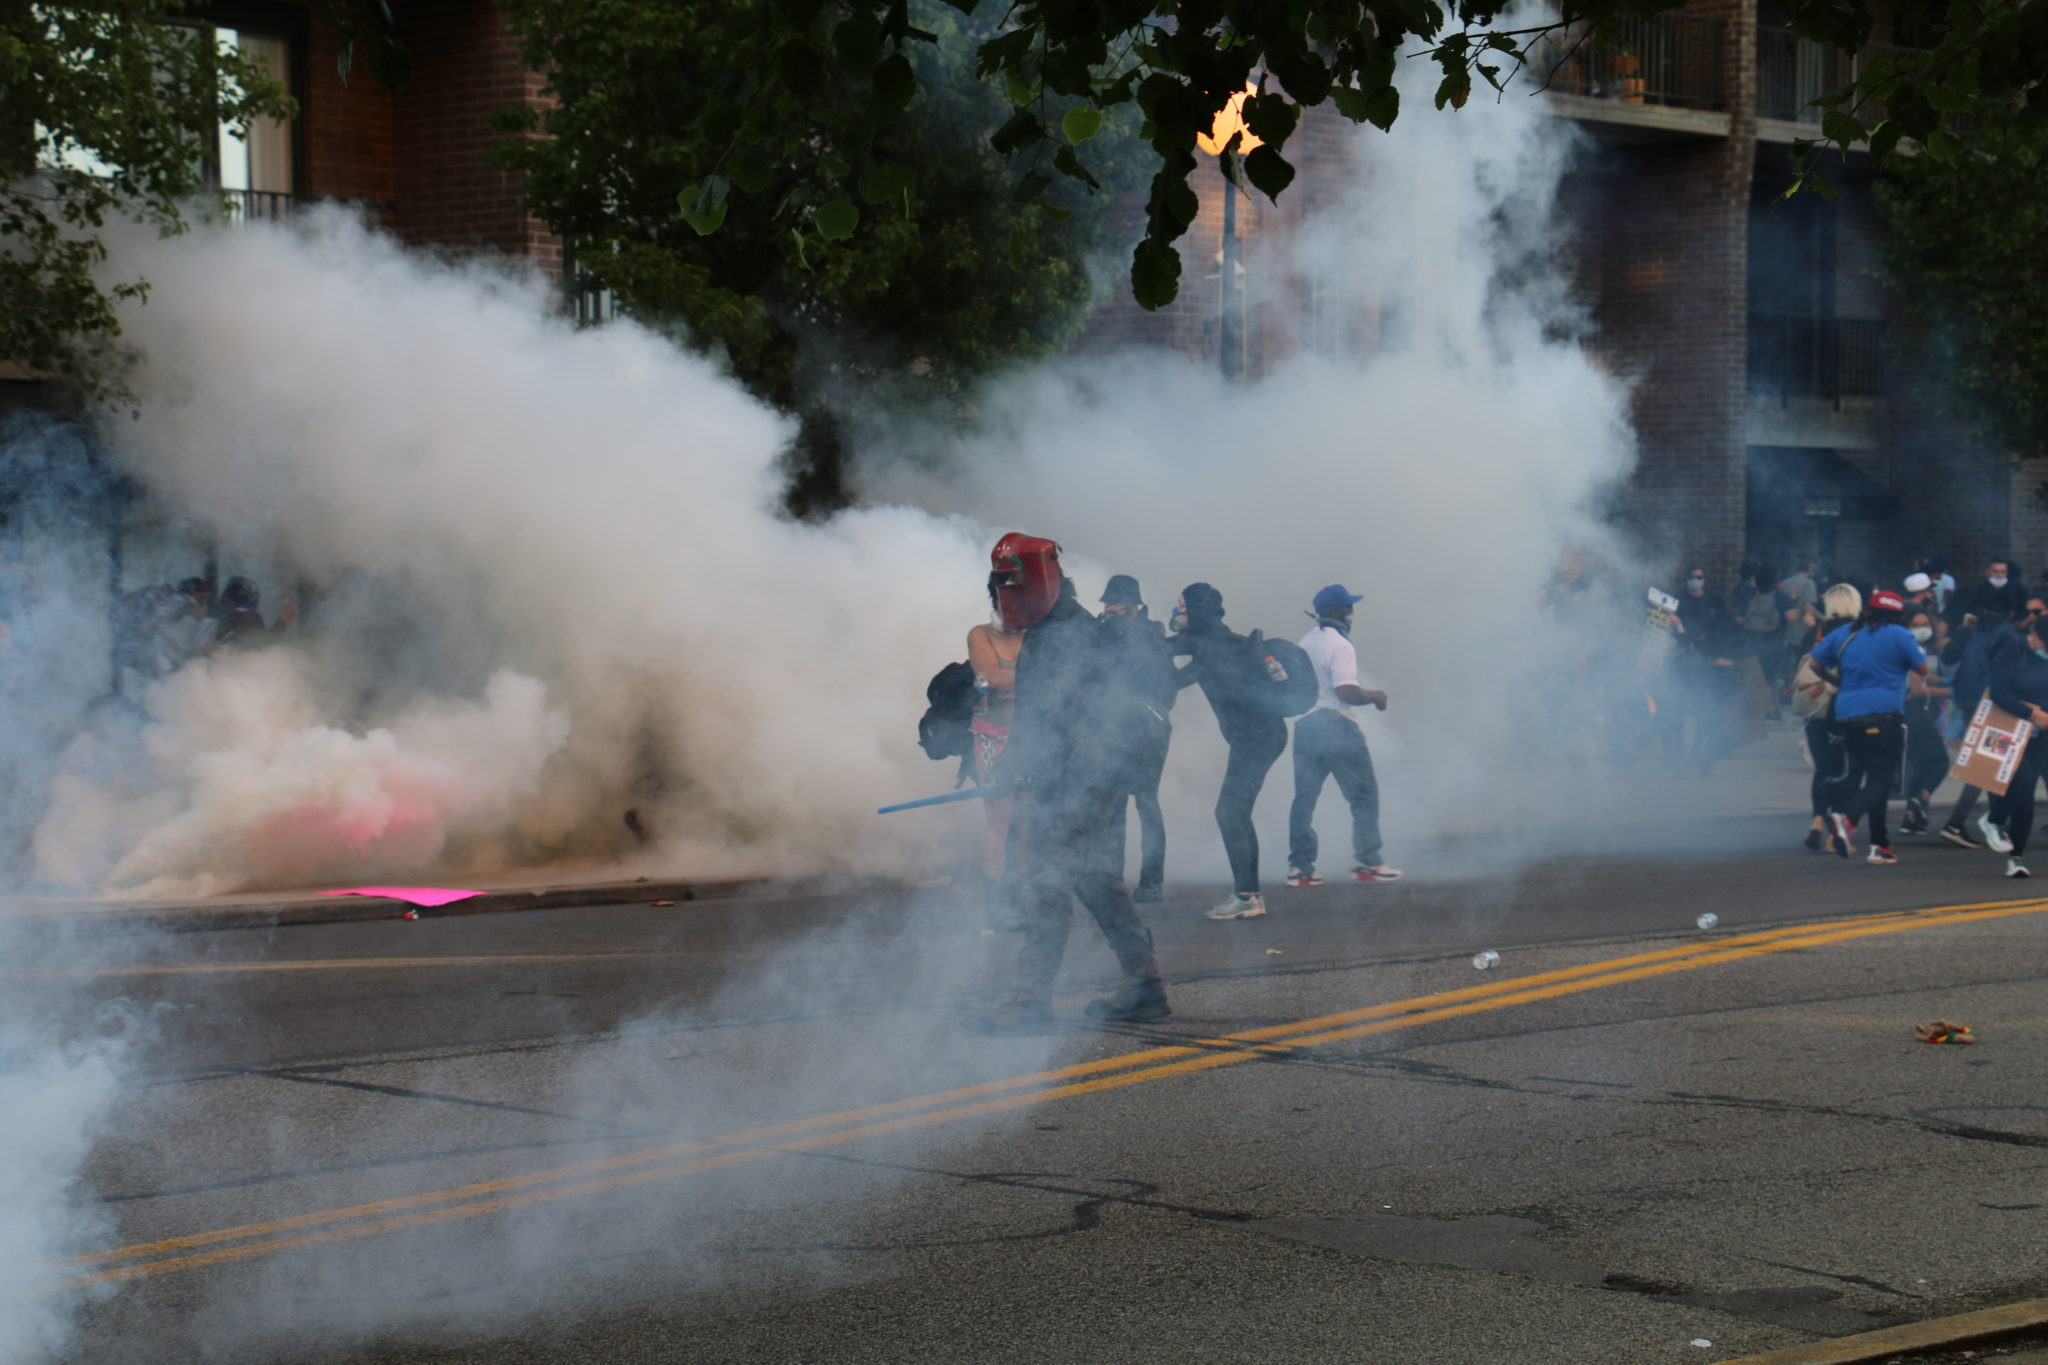 Police deployed tear gas, rubber bullets in East Liberty against protesters of Black Lives Matter march; 20 arrested